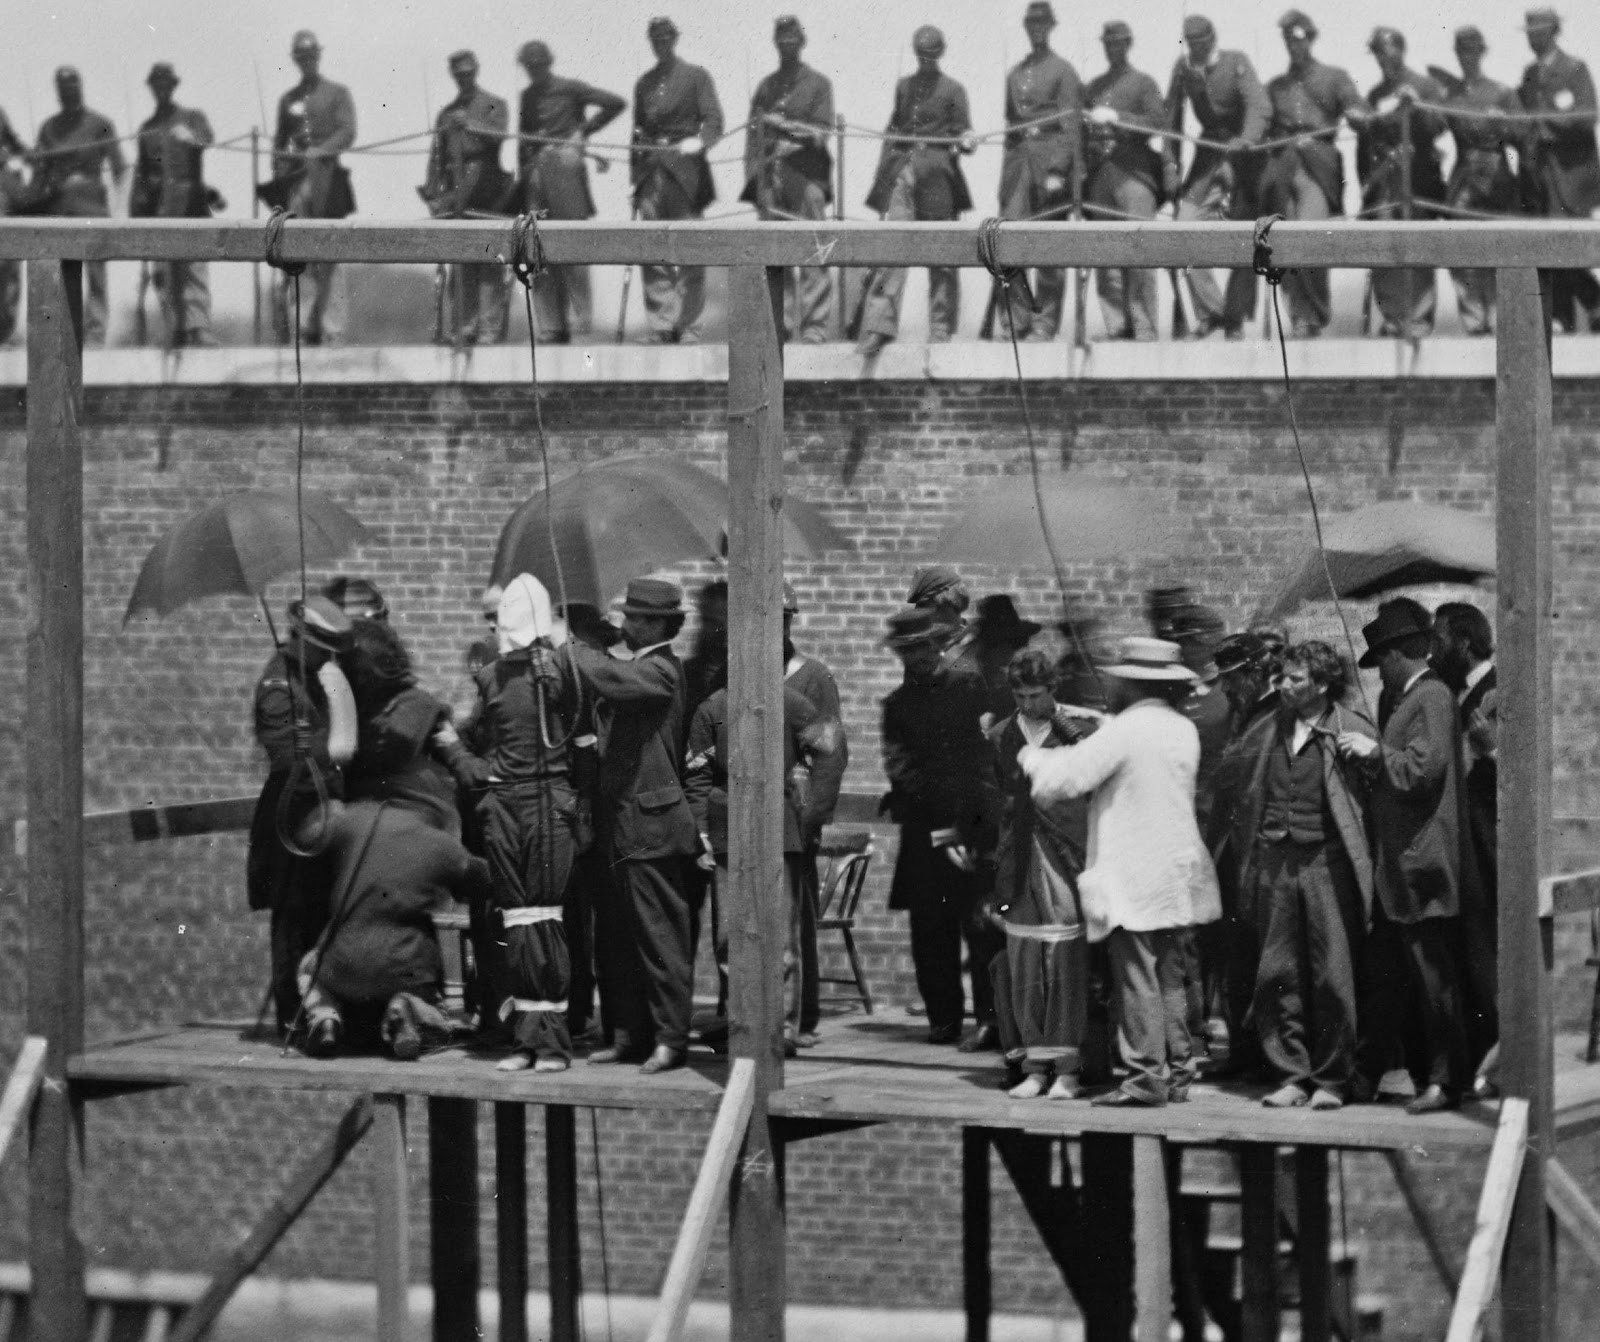 The Lincoln conspirators were hung at Fort McNair in my neighborhood of SW, DC.